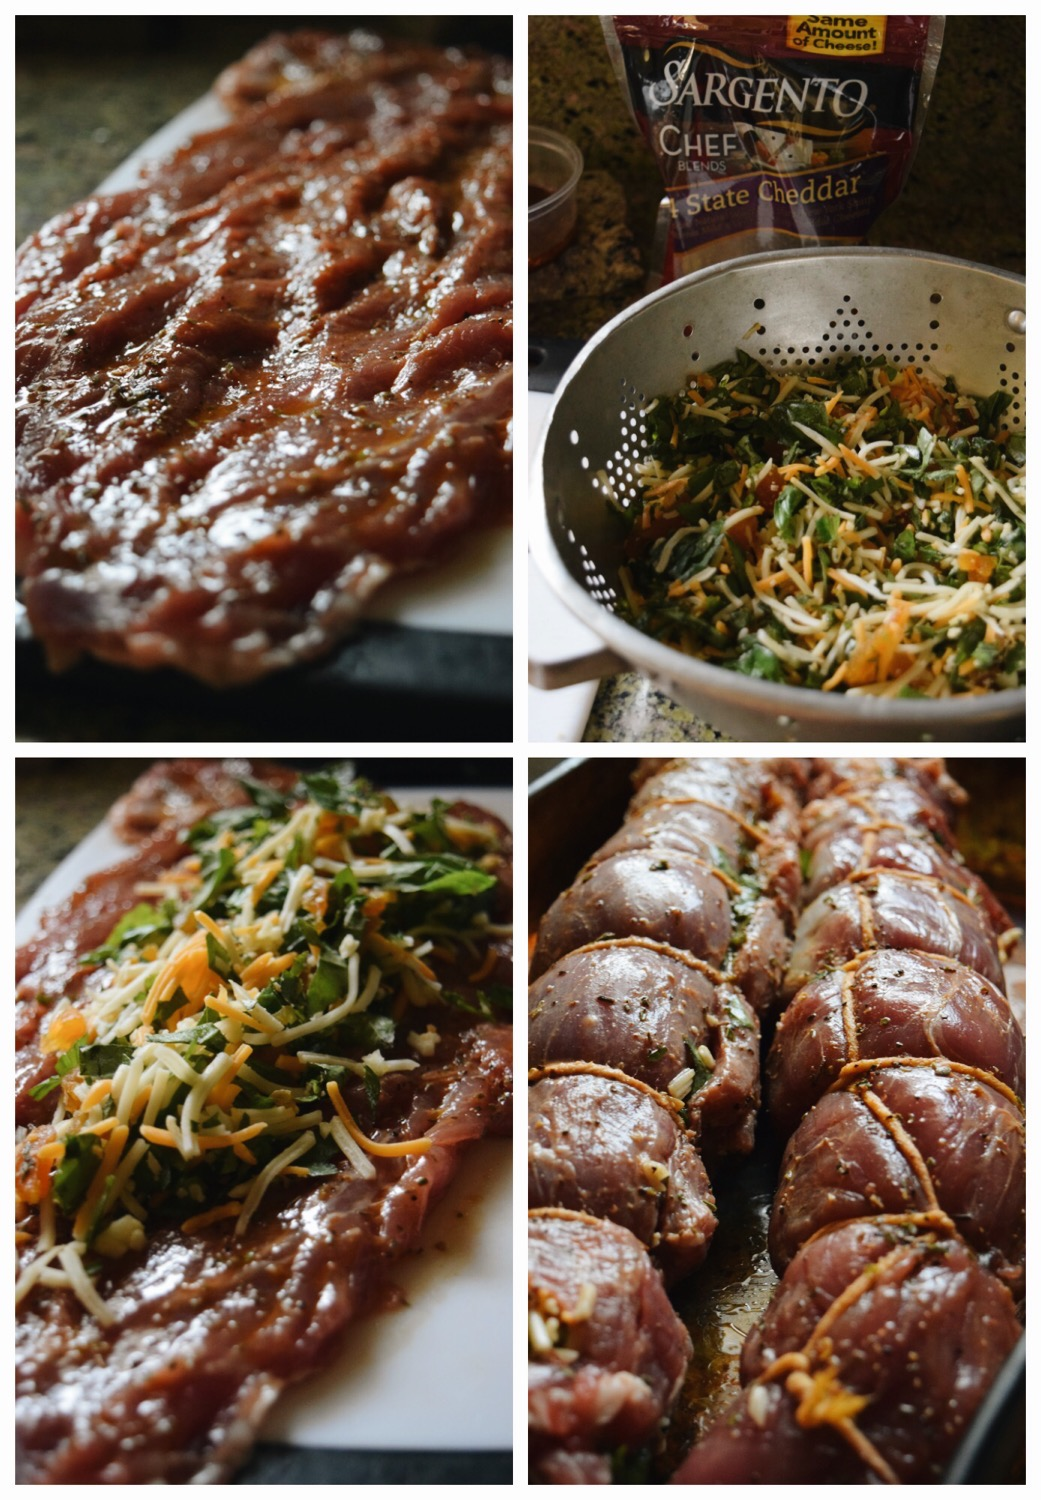 Living the Gourmet: Stuffed Pork Loin with Apricots, Basil, Garlic and Cheddar